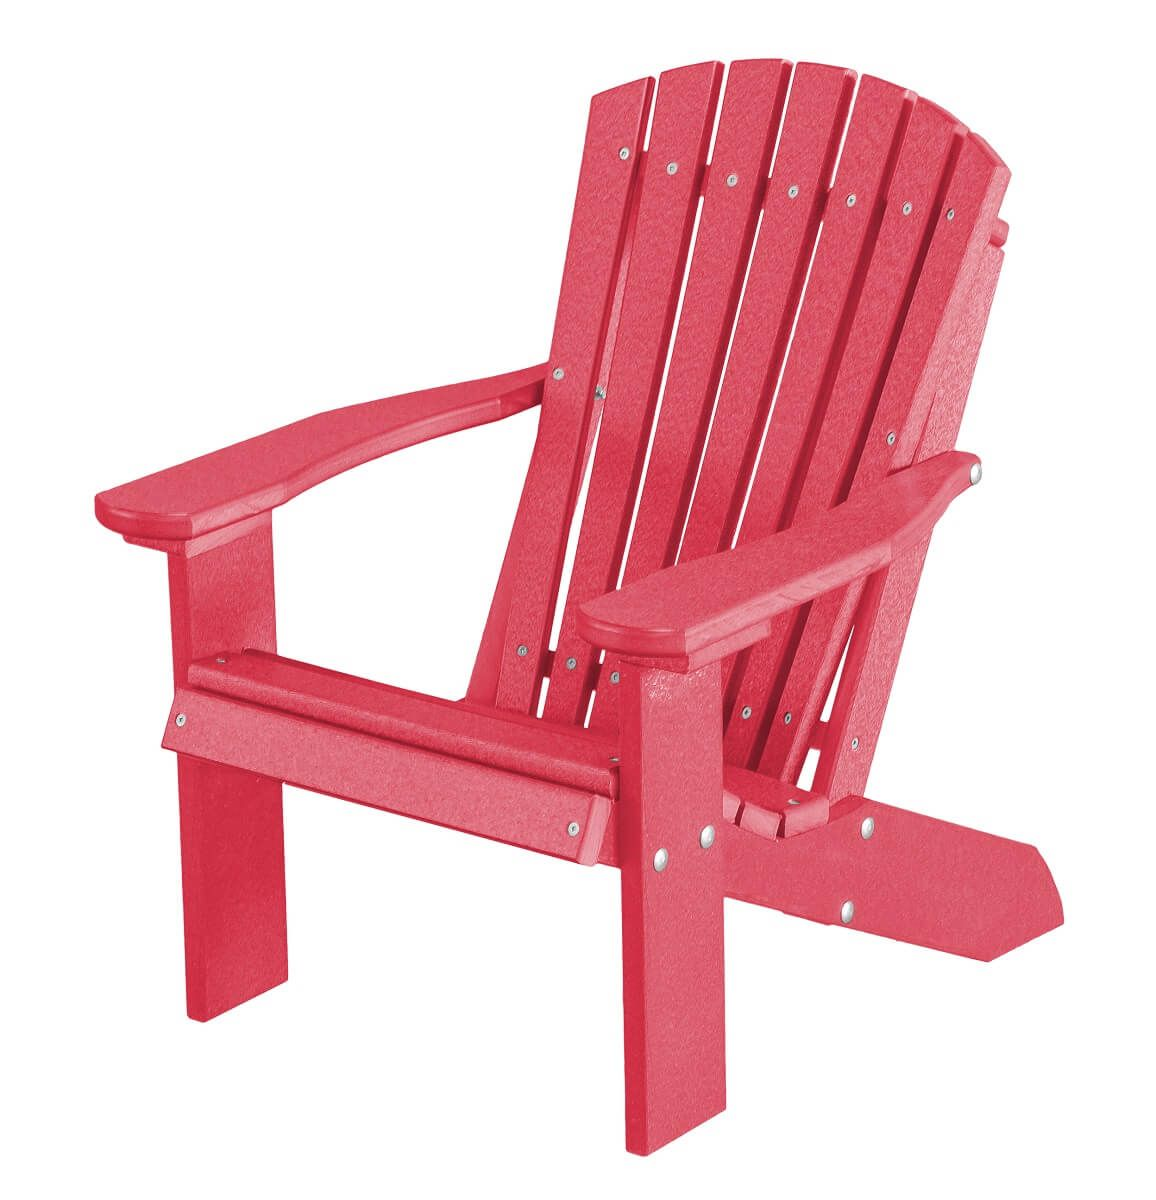 Pink Sidra Child's Adirondack Chair